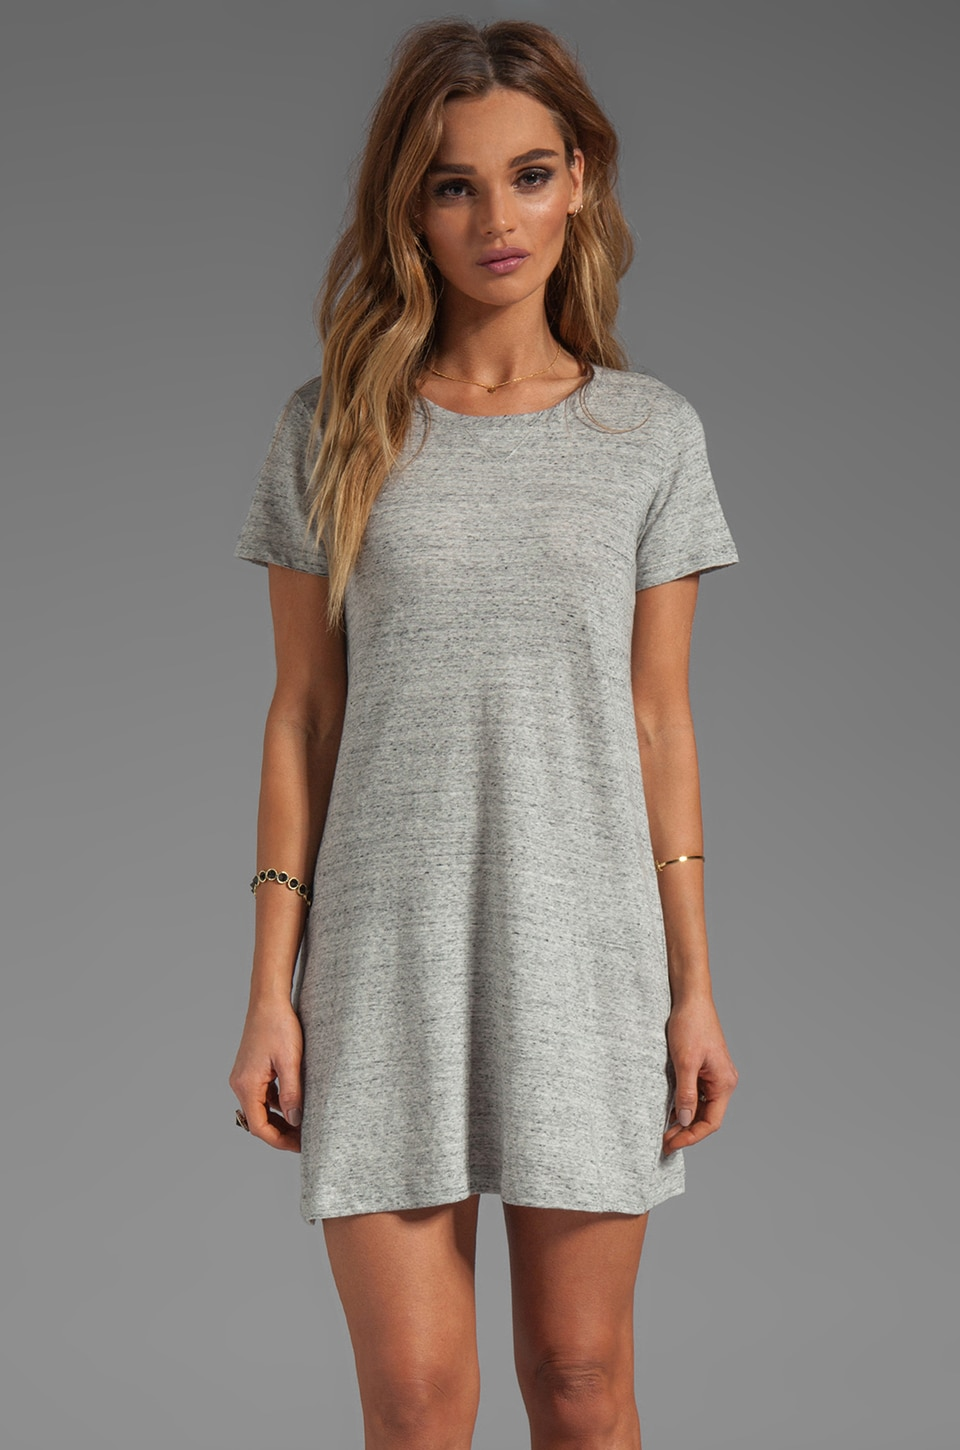 Theory Teju Dress in Heather Grey